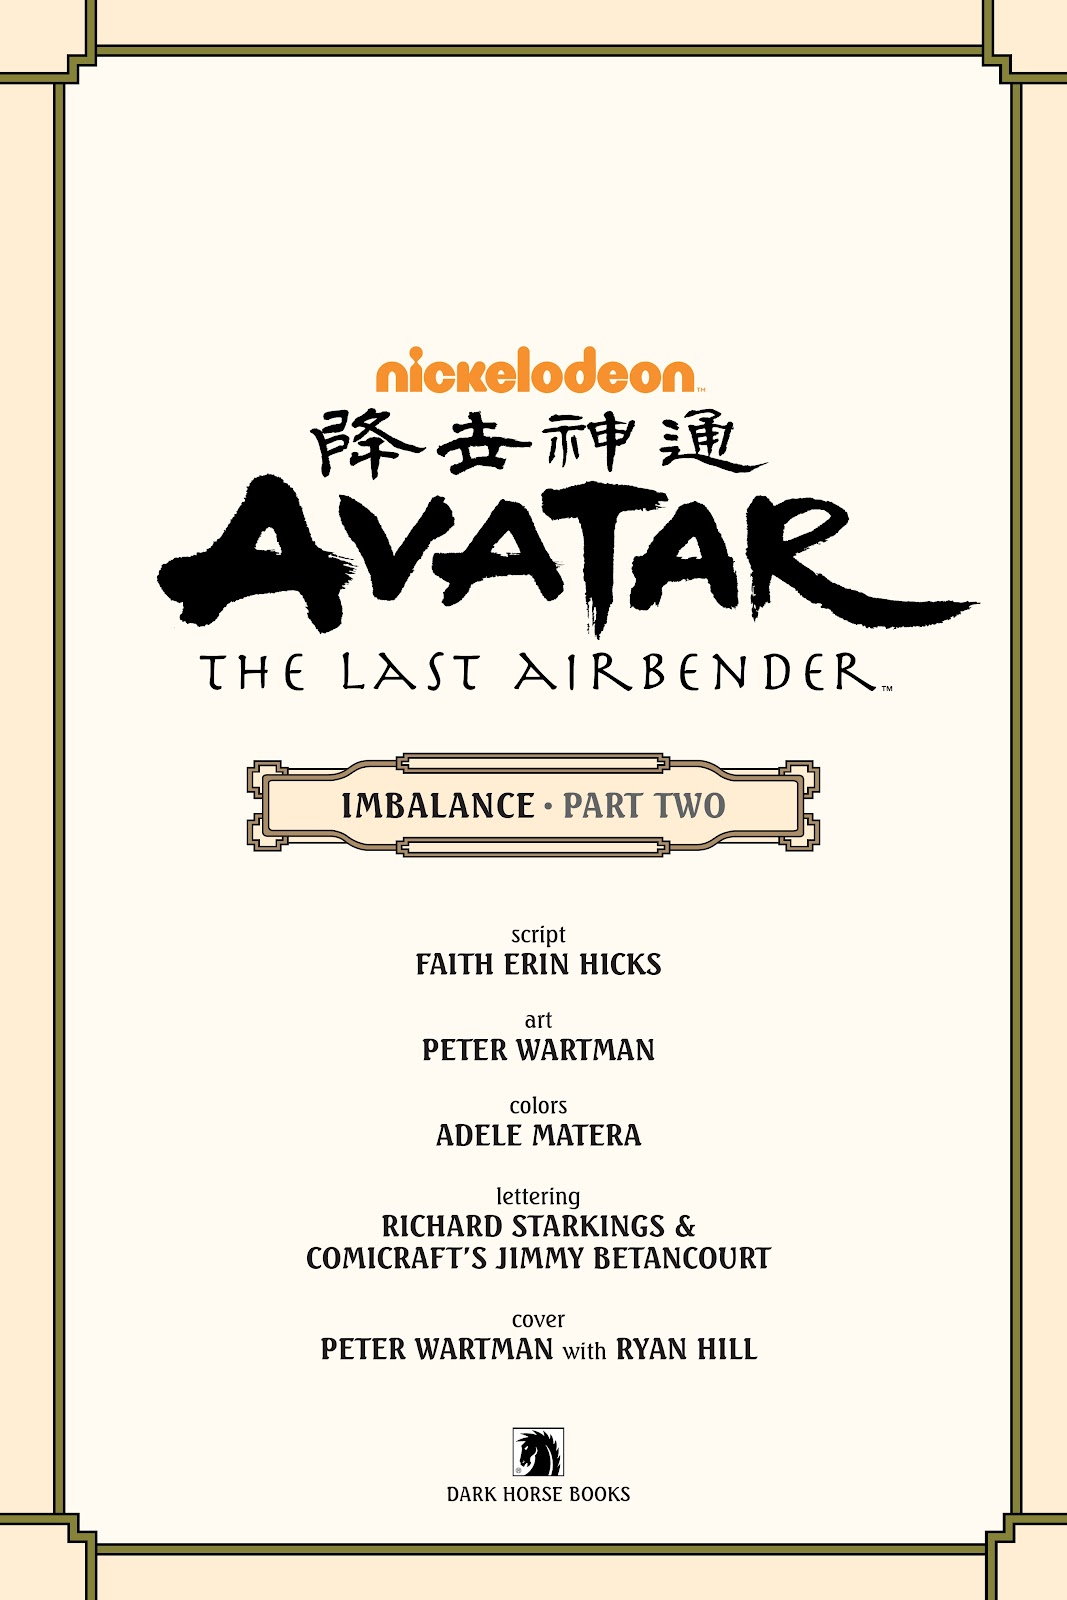 Read online Nickelodeon Avatar: The Last Airbender - Imbalance comic -  Issue # TPB 2 - 4